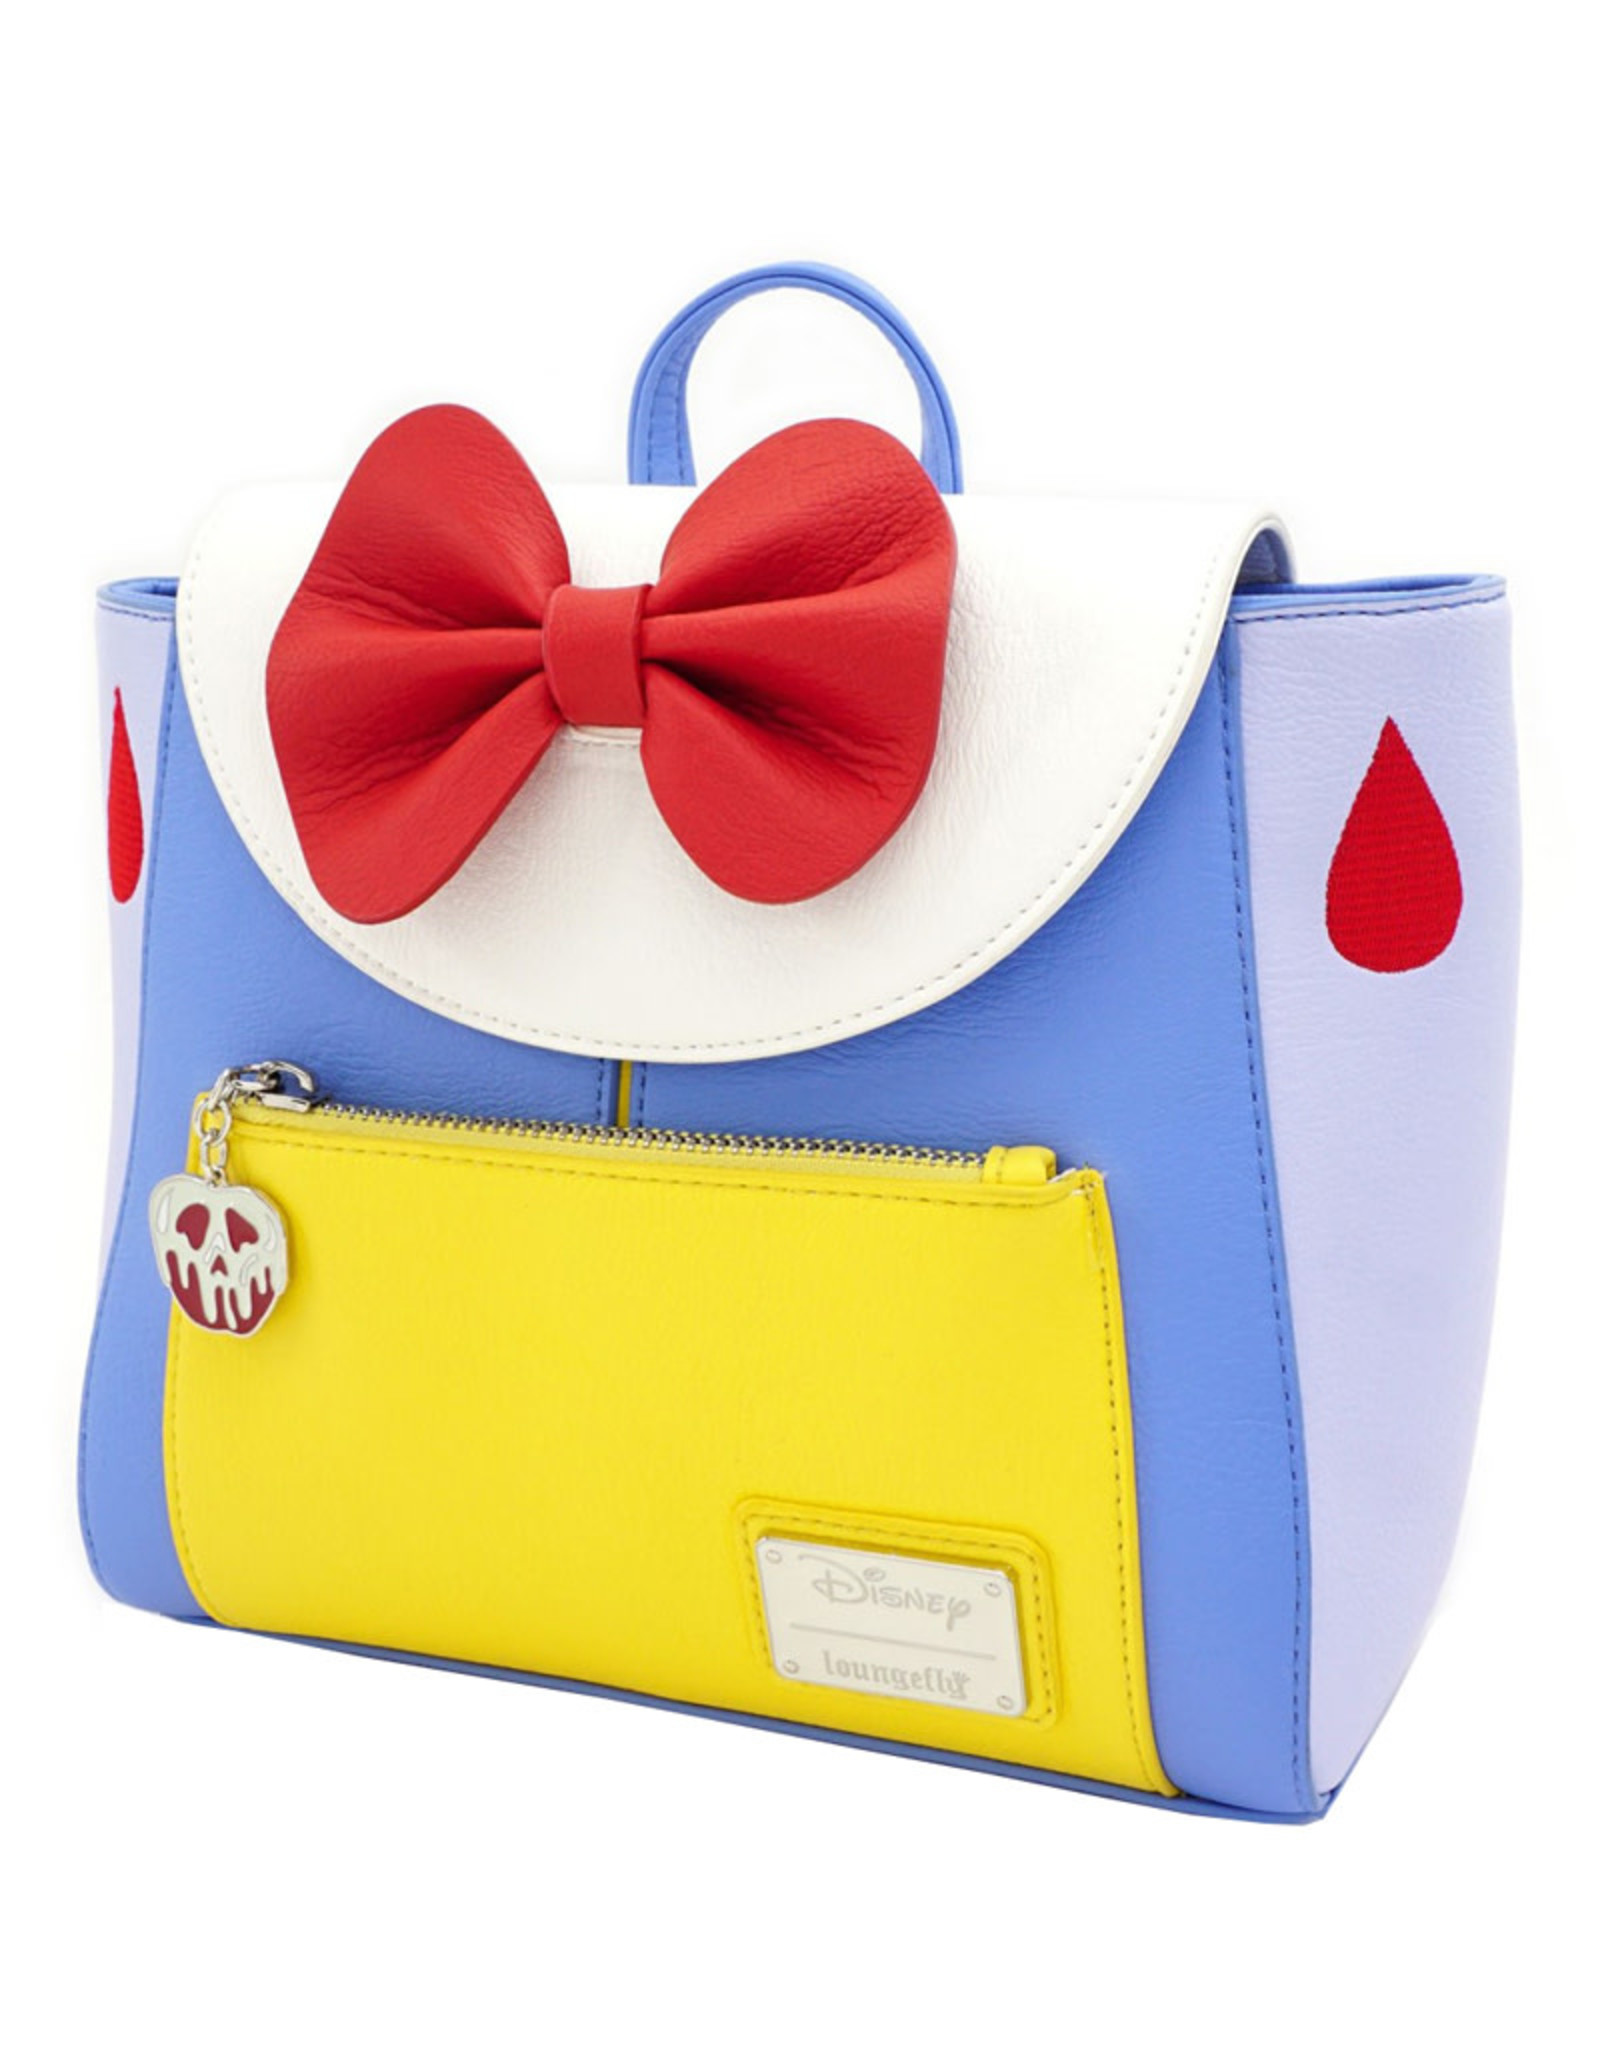 Disney Disney ( Loungefly Mini Backpack  ) Snow White